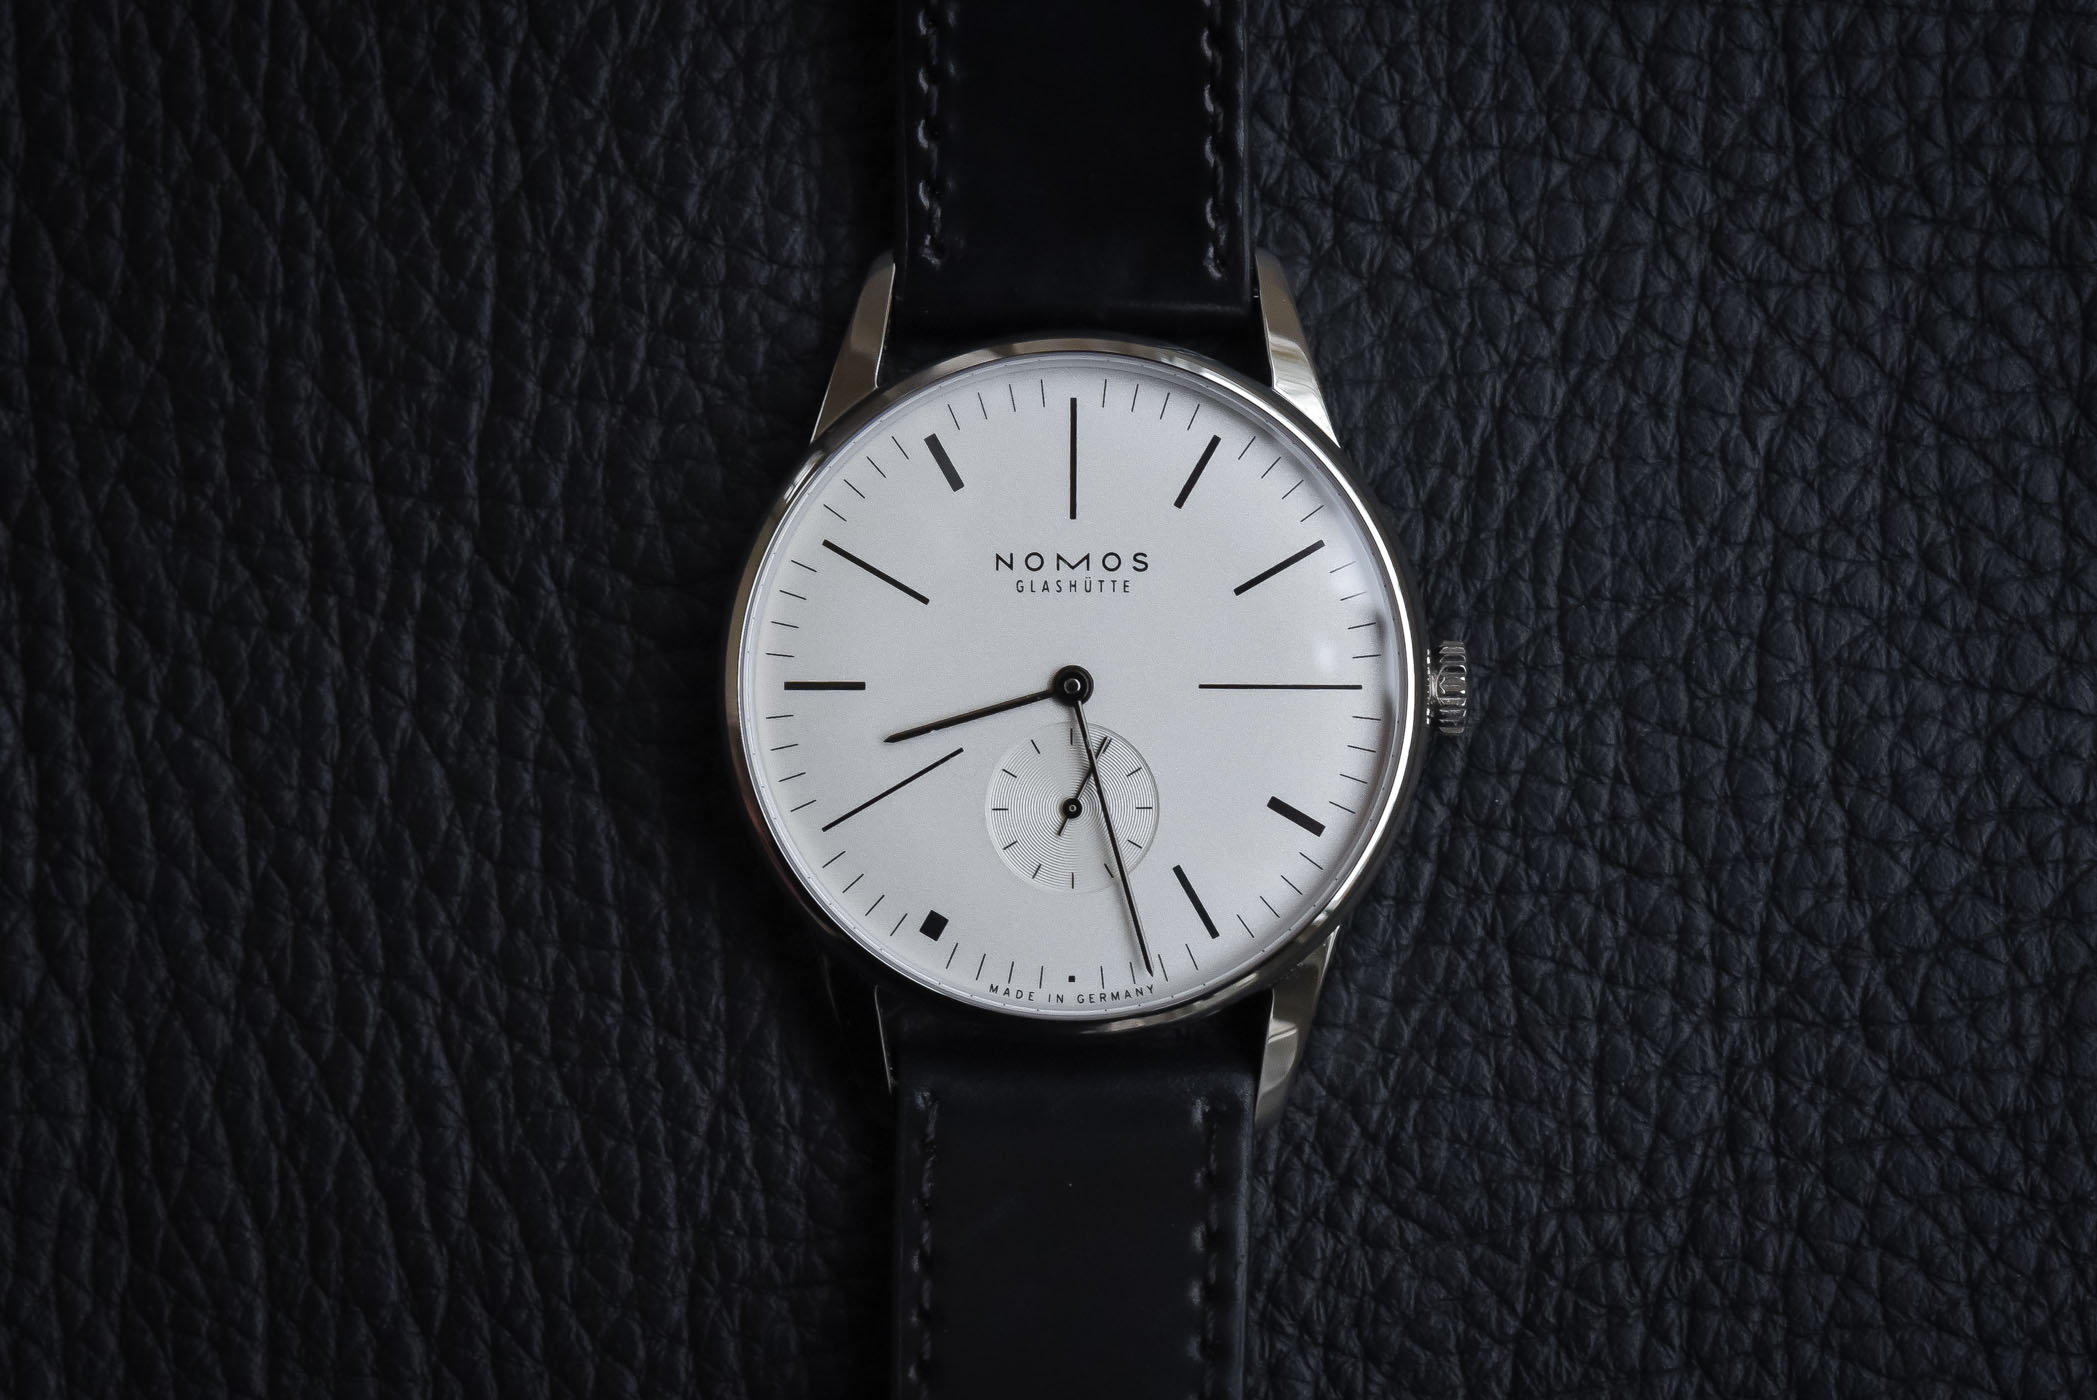 Nomos Orion De Stijl Limited Edition Ace Jewelers